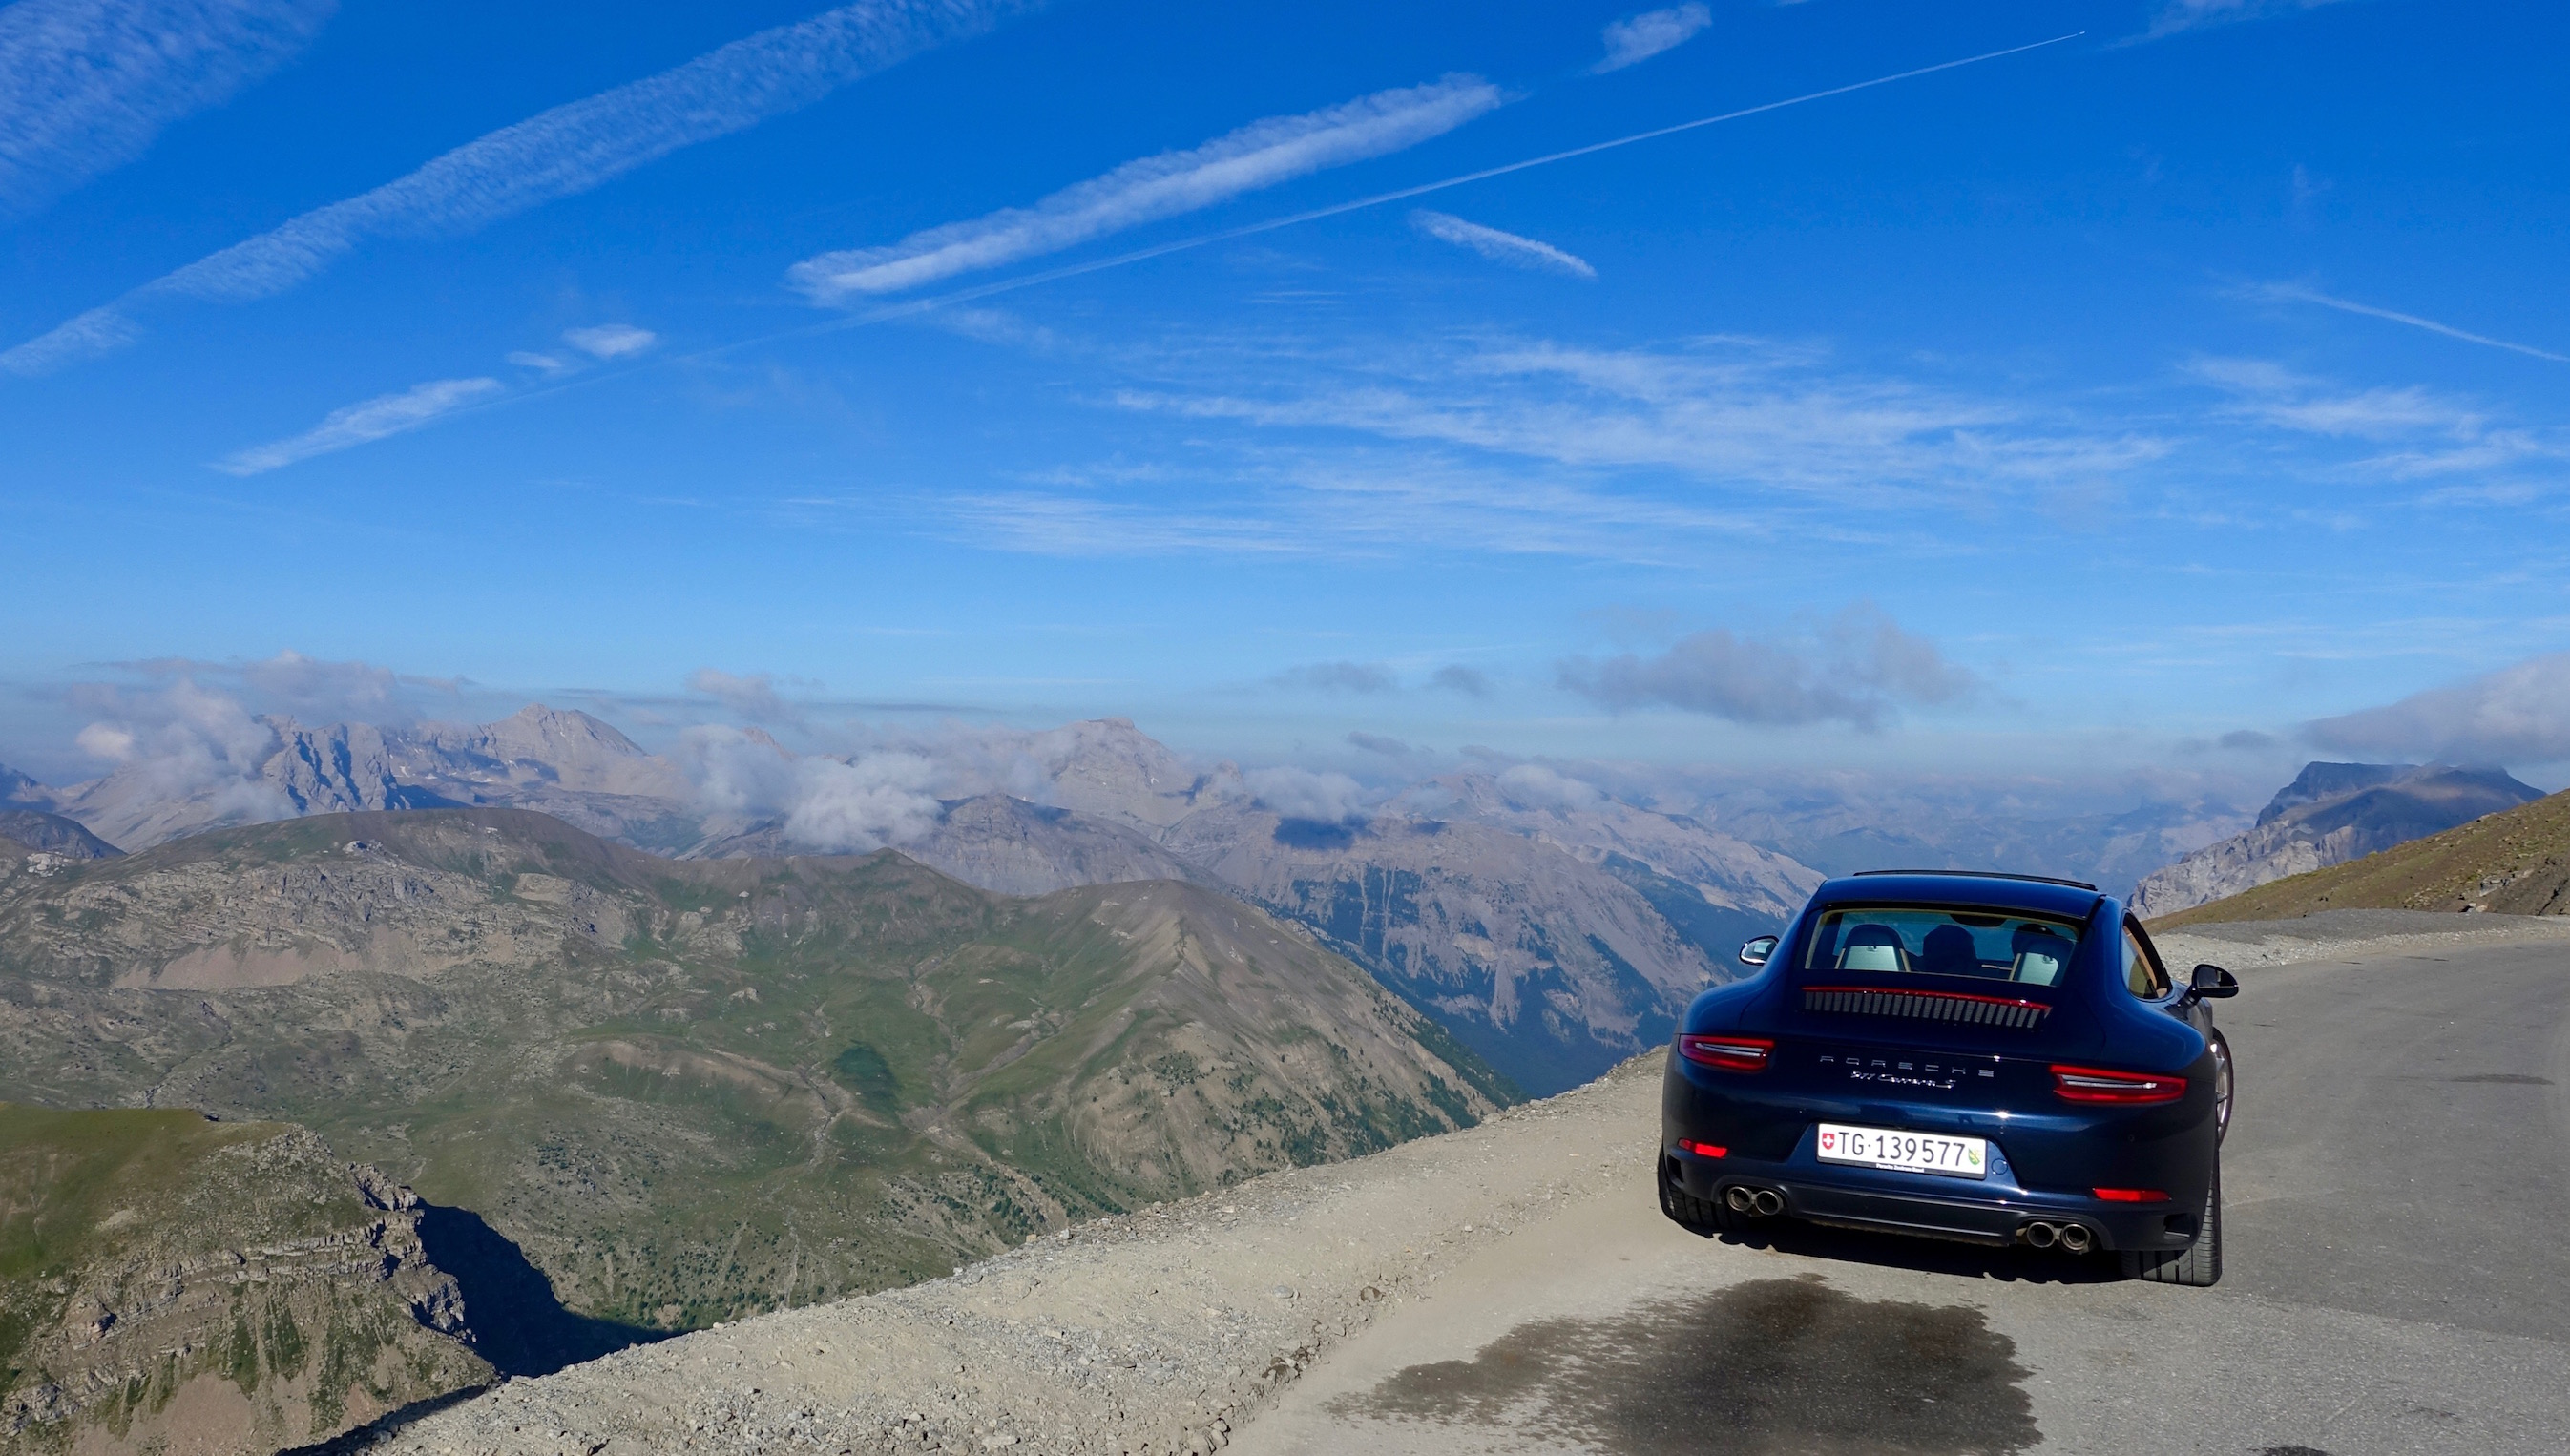 It has to be said, driving an empty road up the Bonette in a 911 was probably a lot of fun!